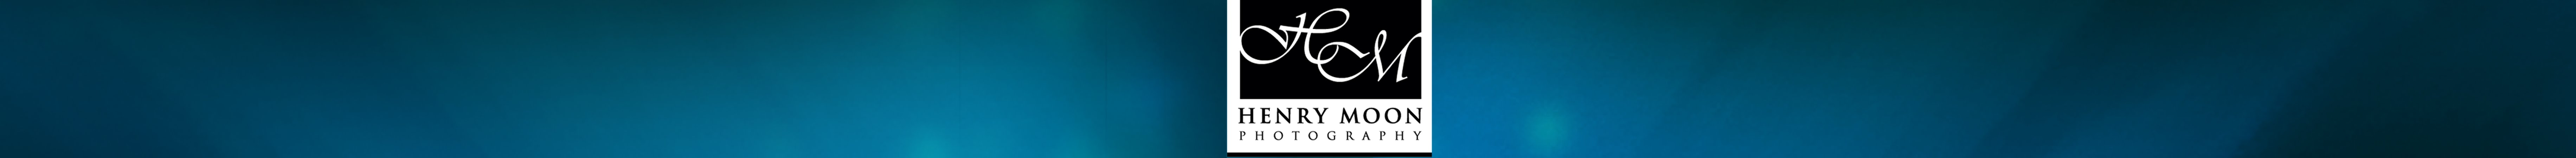 http://partyfacemagicfacepainting.weebly.com/henry-moon-photography.html